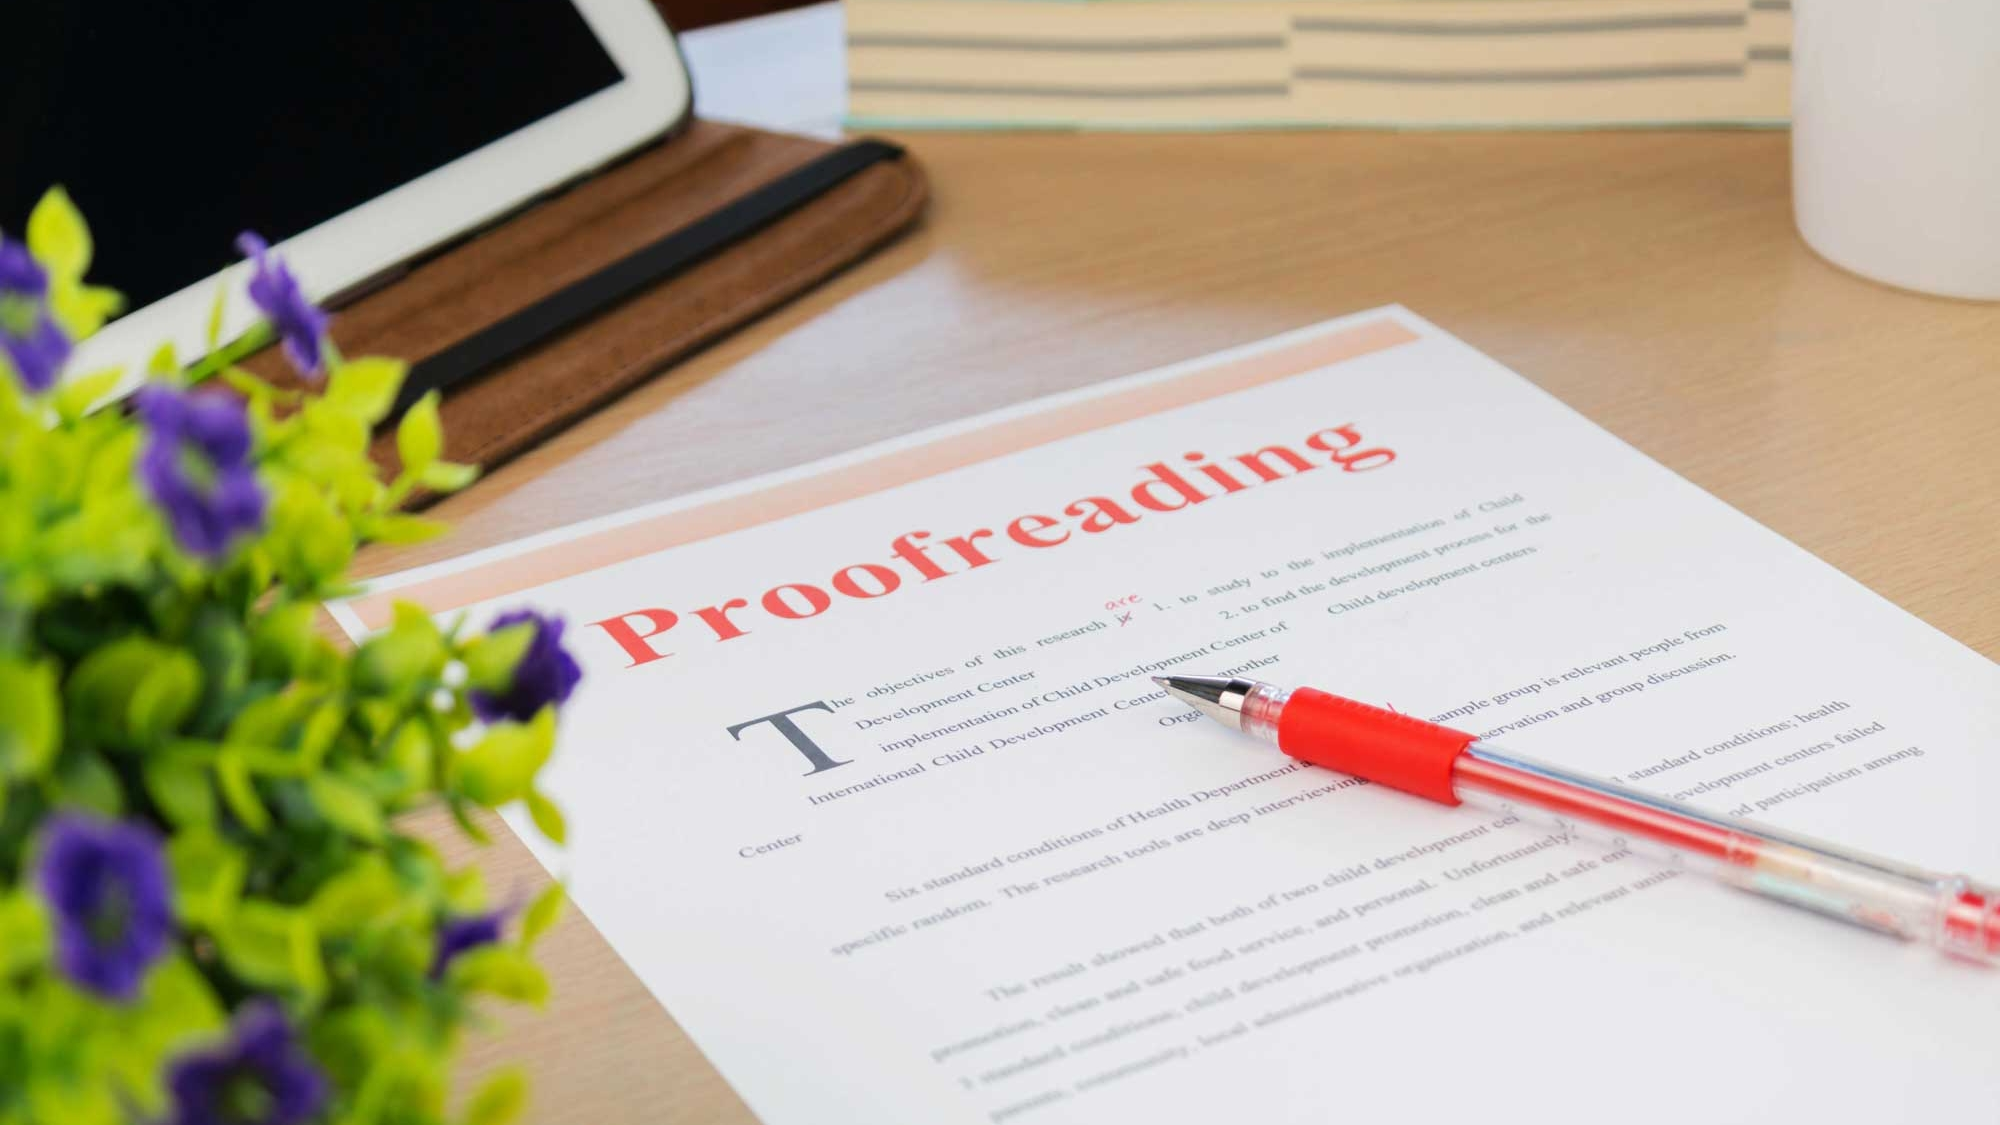 Proofreading - Proofreading should be the final step before the book goes to the presses. A misplaced comma or missing apostrophe generally is more embarrassing than anything else, but for some publications, it could cost a lot of money to reprint materials. Oakhurst Dairy learned this the hard way when they neglected to use a serial comma (also called an Oxford comma or a Harvard comma). A missing comma in this case resulted in a loss of $5 million.